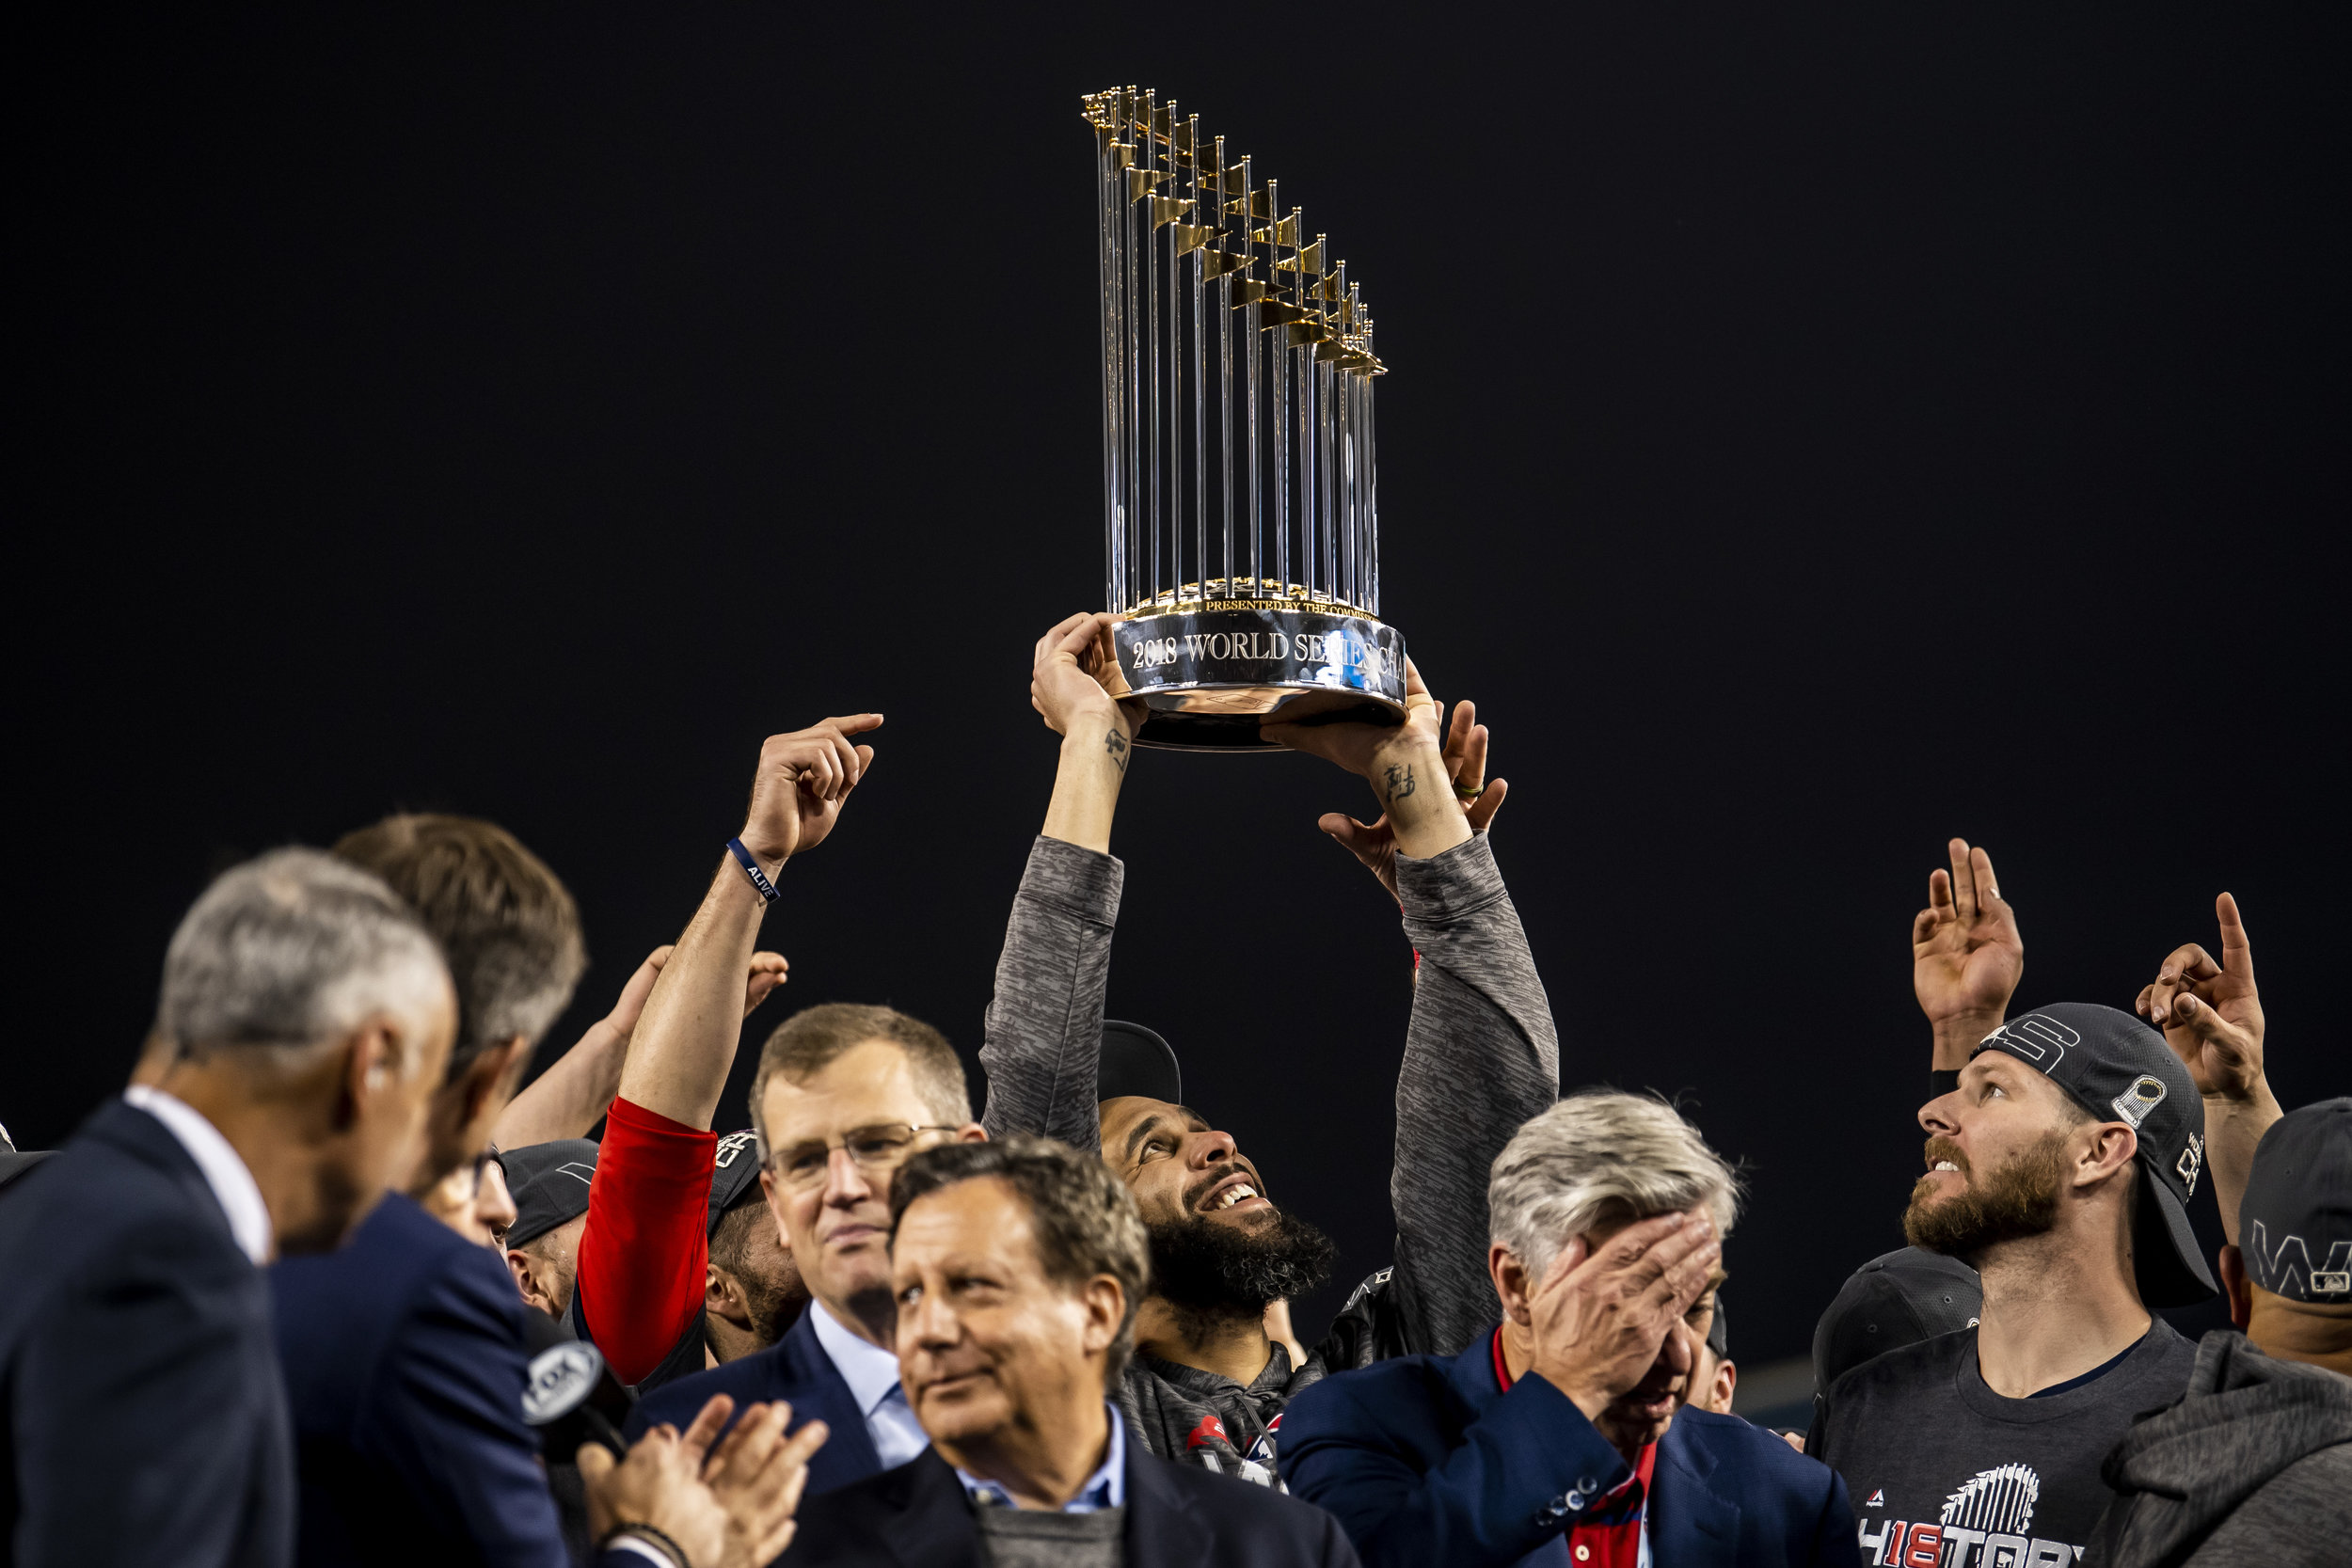 October 28, 2018, Los Angeles, Ca: Boston Red Sox pitcher David Price holds up the World Series Trophy after the Boston Red Sox defeated the Los Angeles Dodgers in Game 5 to win the World Series at Dodger Stadium in Los Angeles, California on Saturday, October 28, 2018. (Photo by Matthew Thomas/Boston Red Sox)